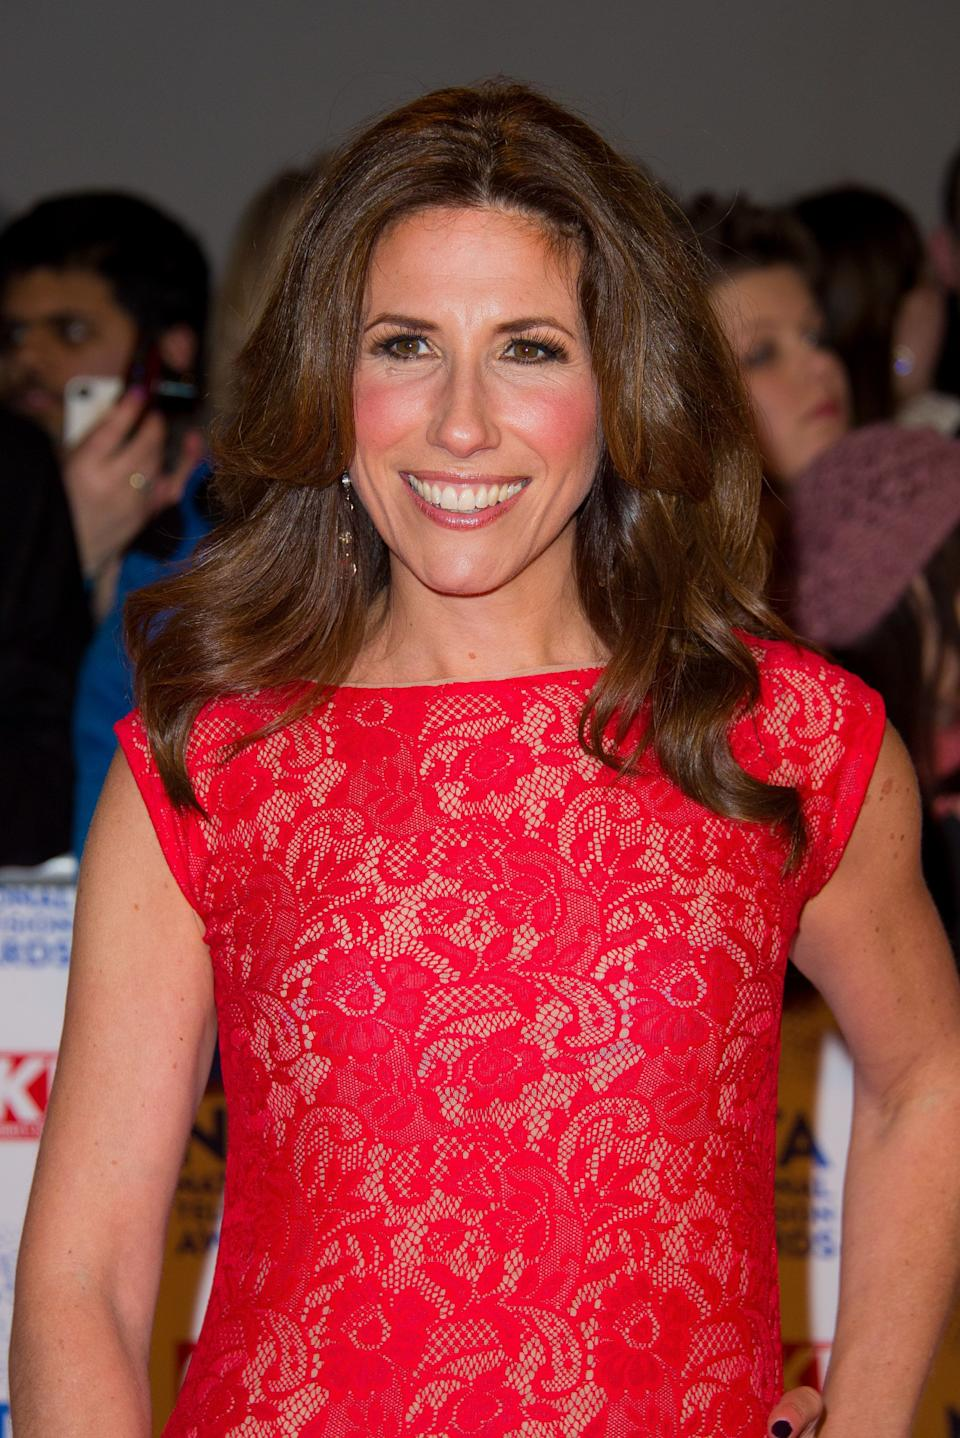 Gaynor Faye, who is currently starring in 'Emmerdale' as Megan Macey, played Corrie's Judy Mallett for 4 years in the '90s.